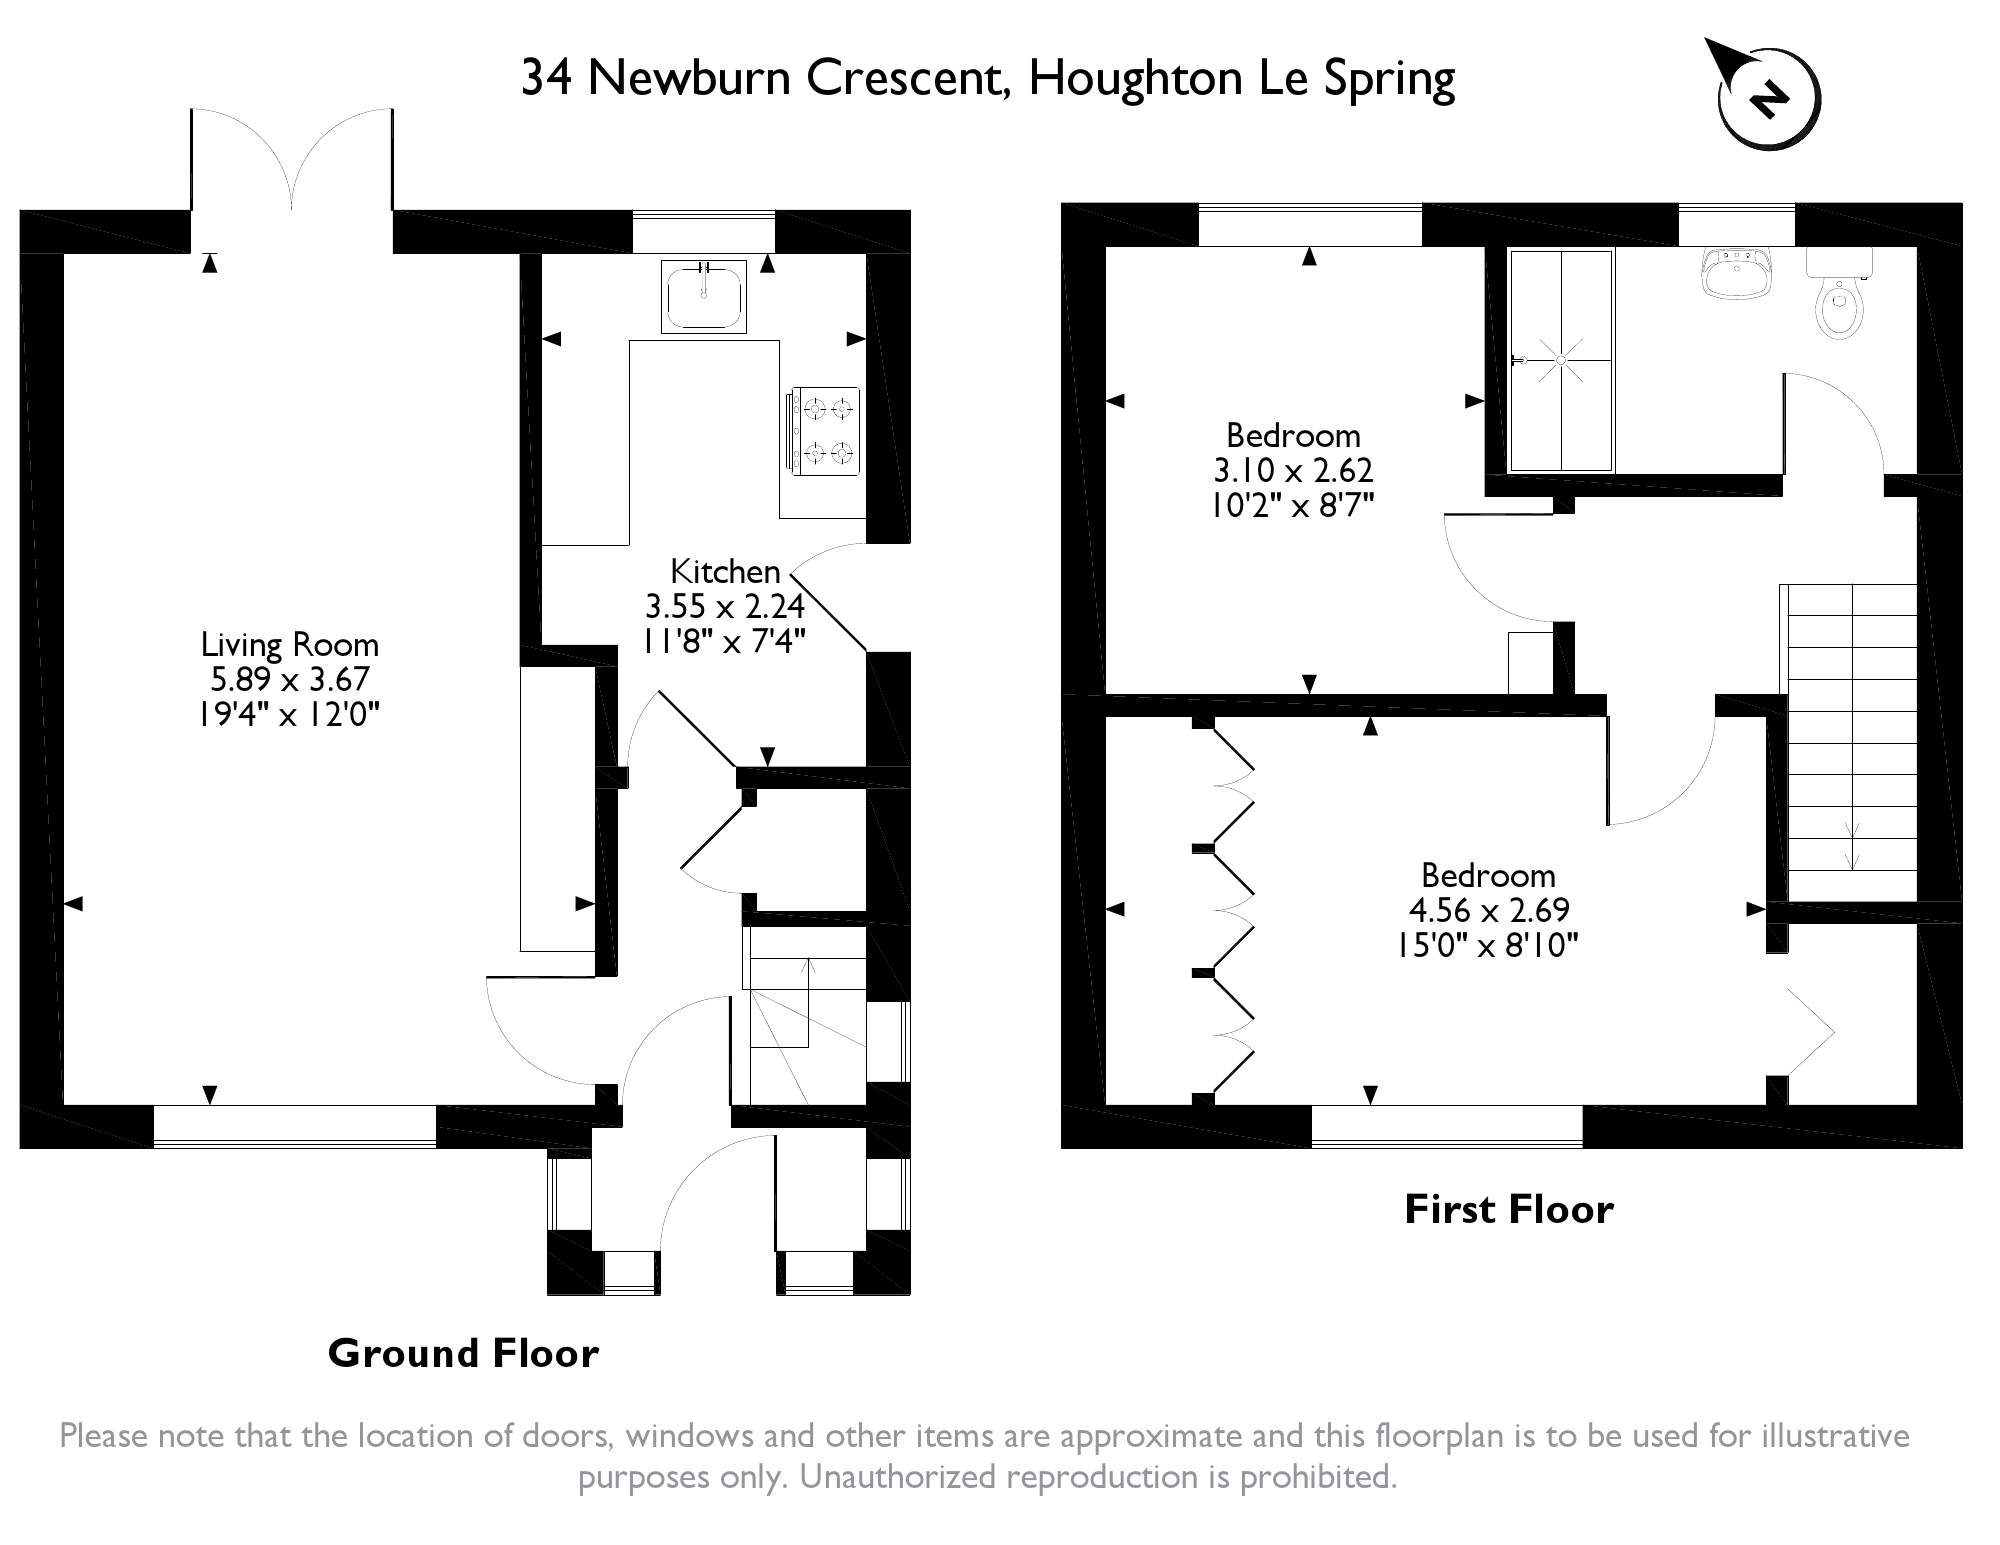 Newburn Crescent, Houghton Le Spring, Tyne & Wear, DH4 floor plan